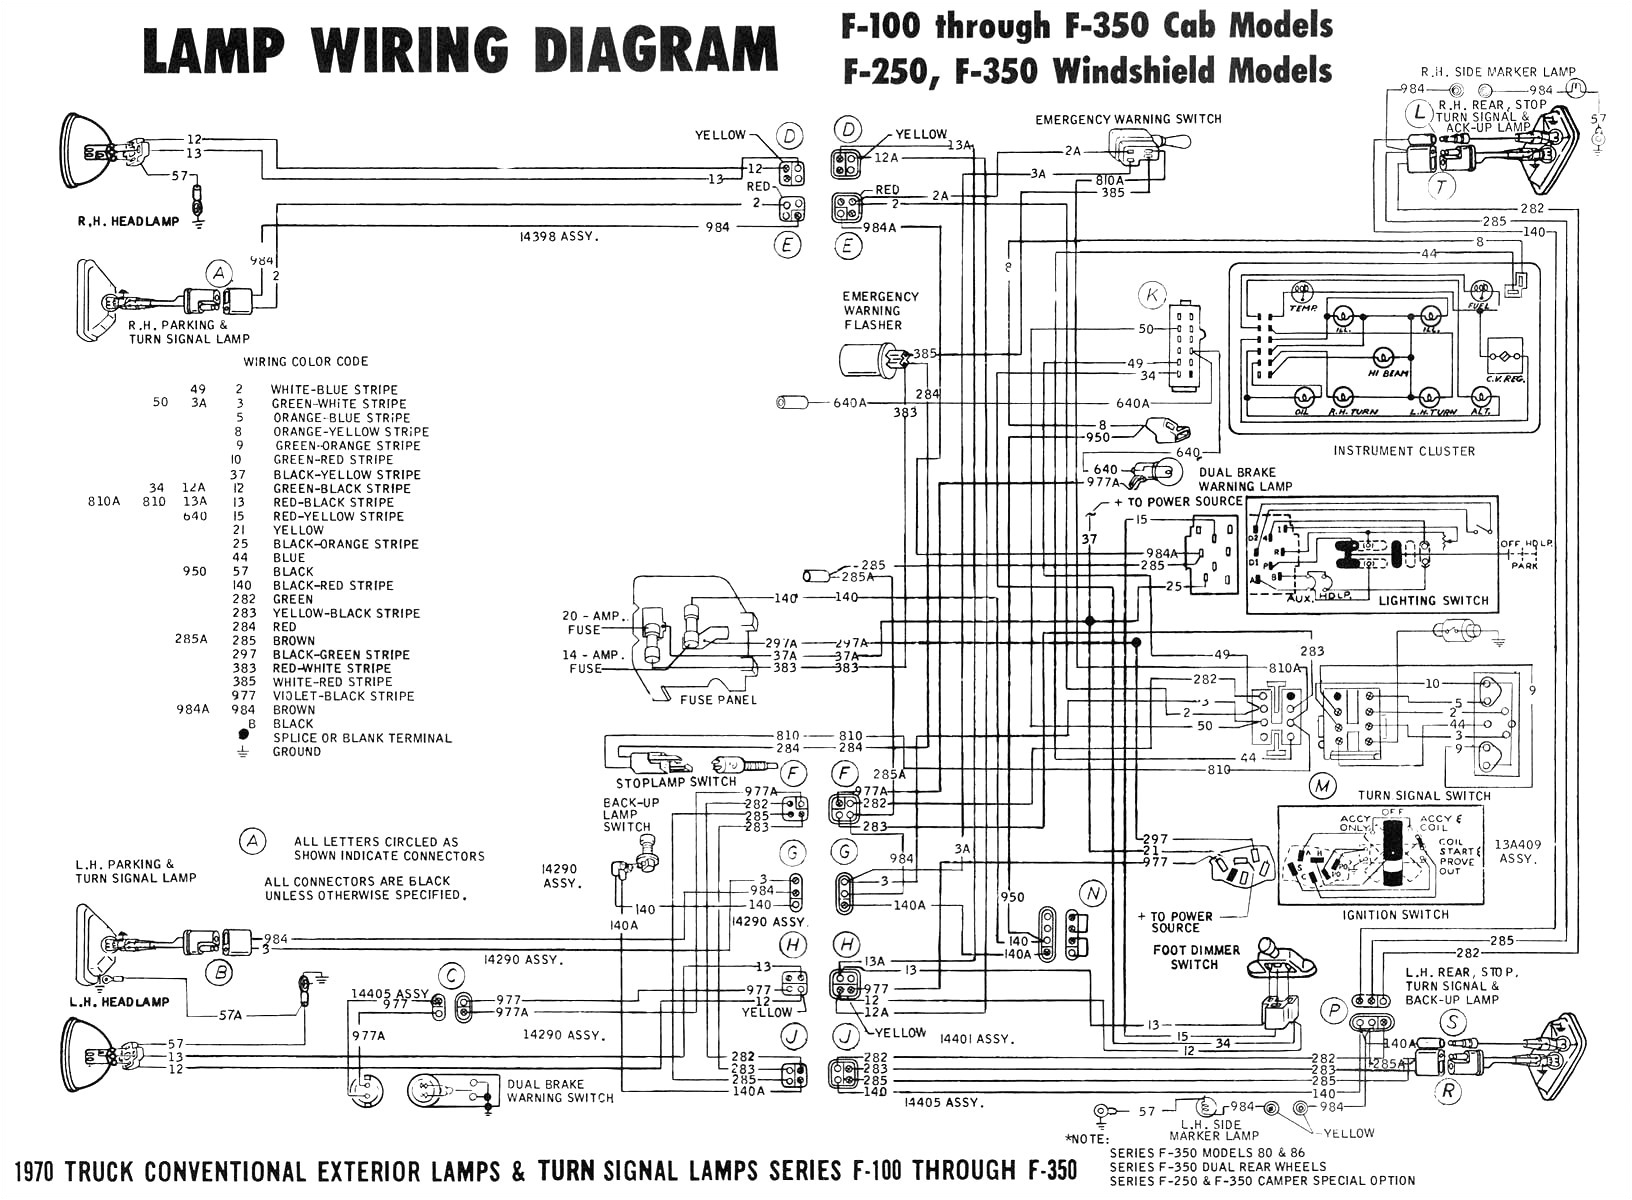 2012 ford f 150 wiring specs electrical wiring diagram 2012 ford f 150 wiring specs